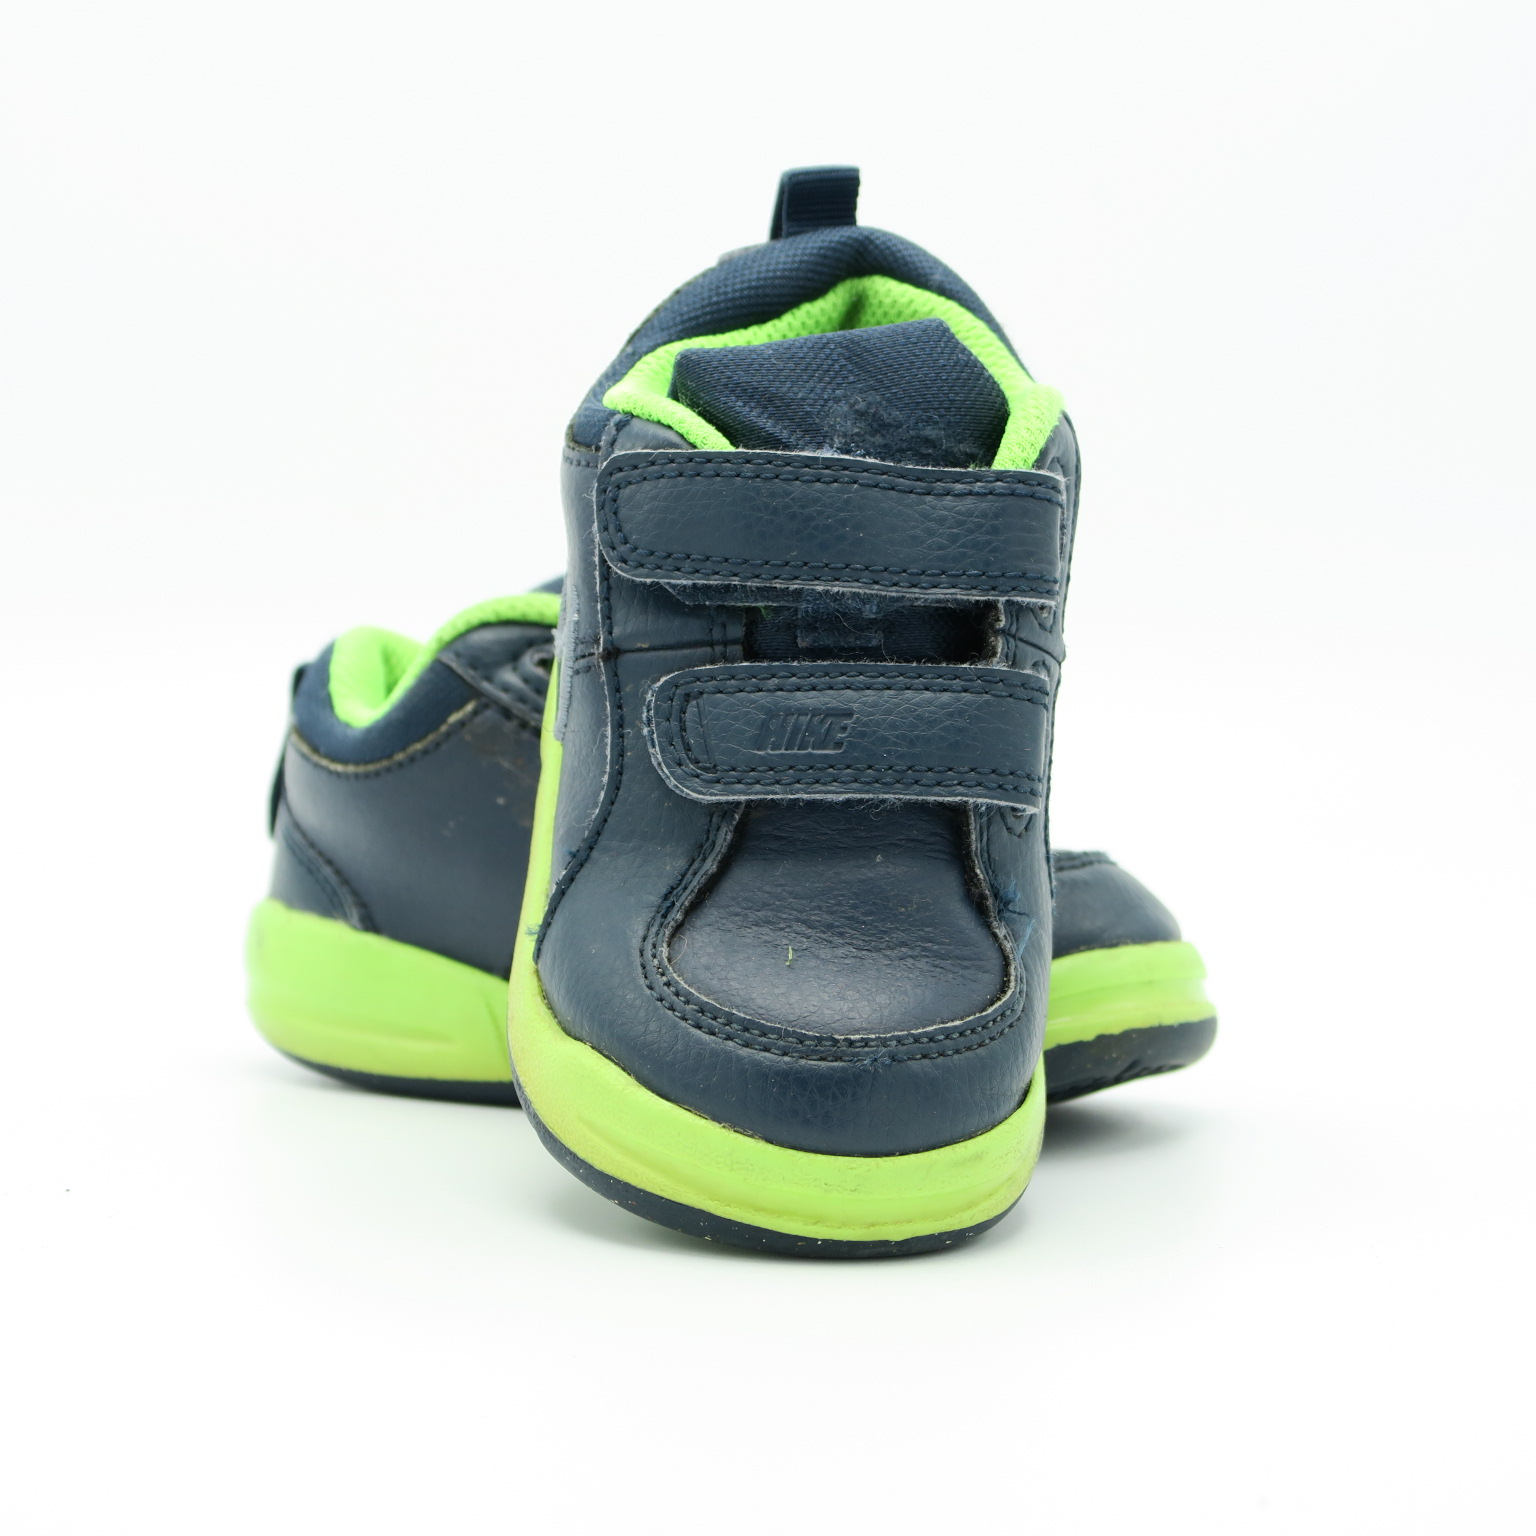 ffc44f32c8 Sneakers size: 6 Toddler - The Swoondle Society